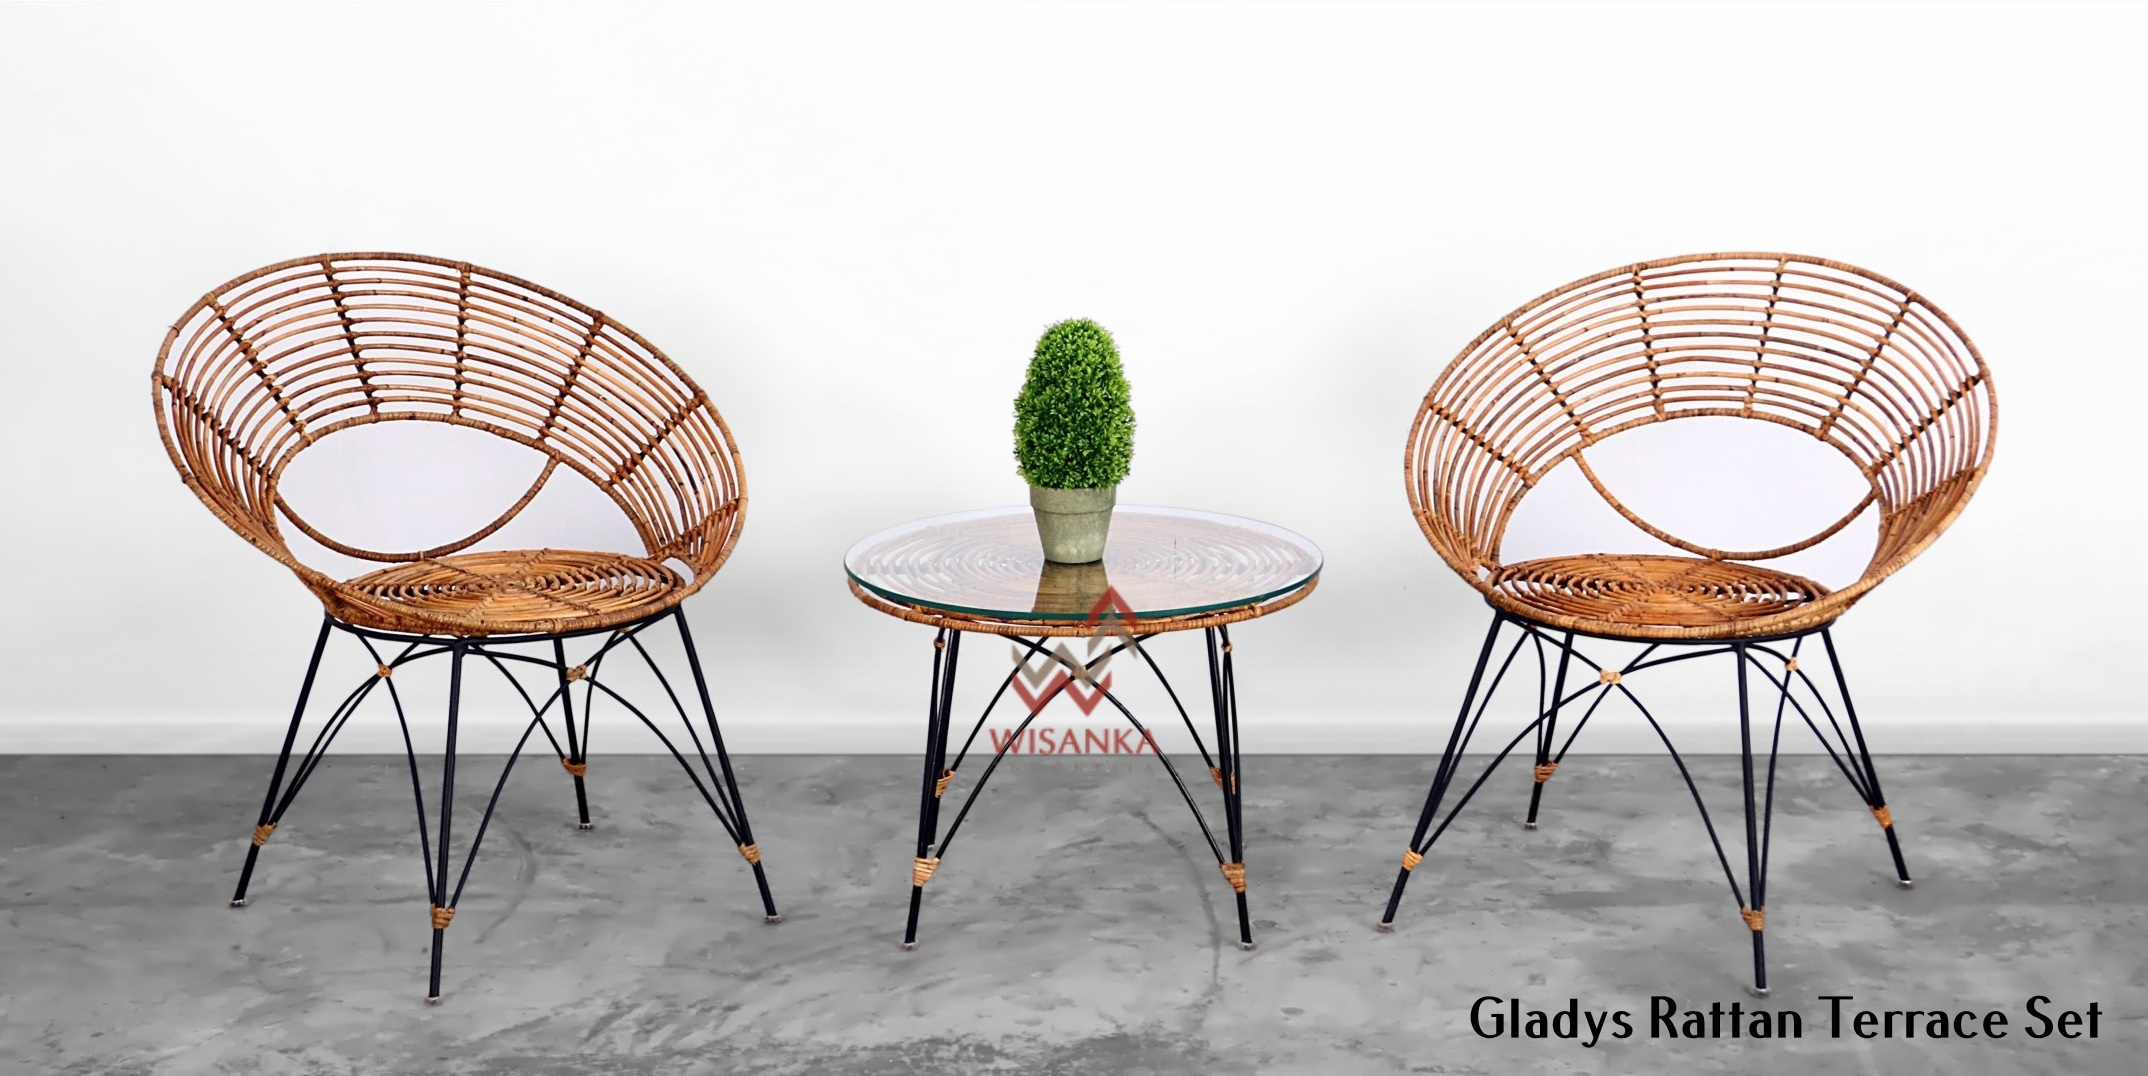 Gladys Rattan Terrace Set